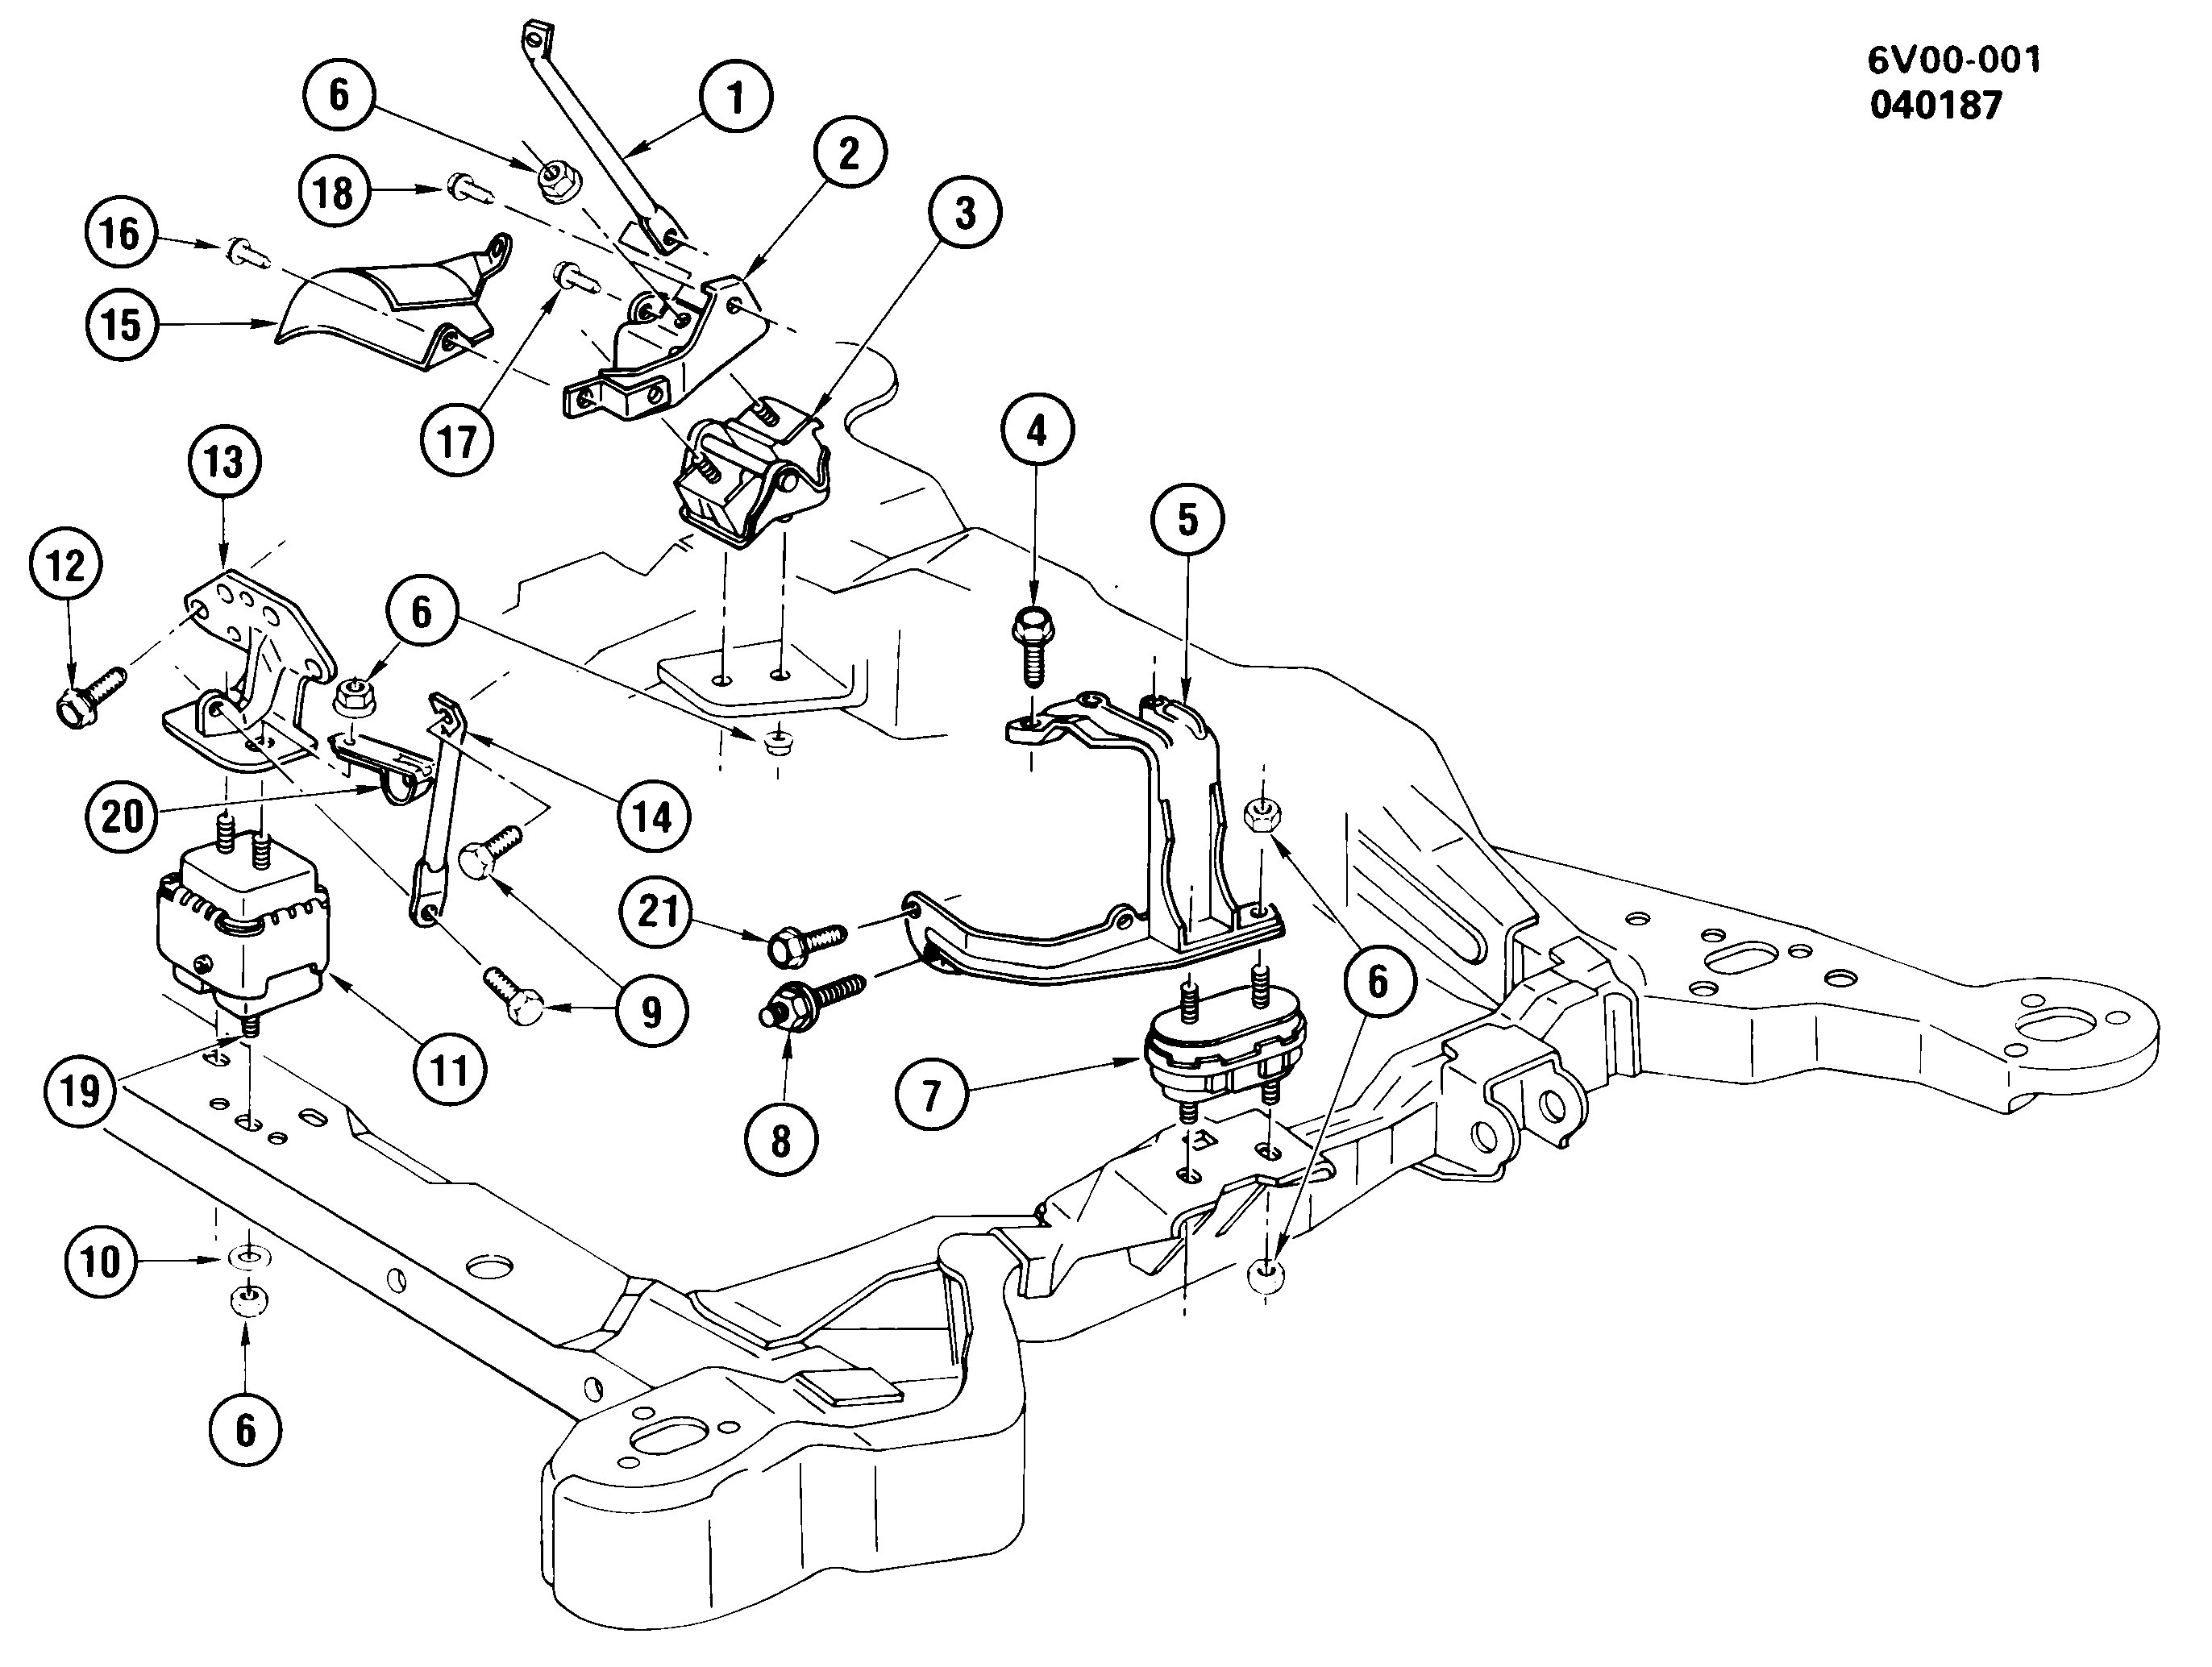 1987-1988 V ENGINE & TRANSMISSION MOUNTING-V8 (LC7/4.1-7)